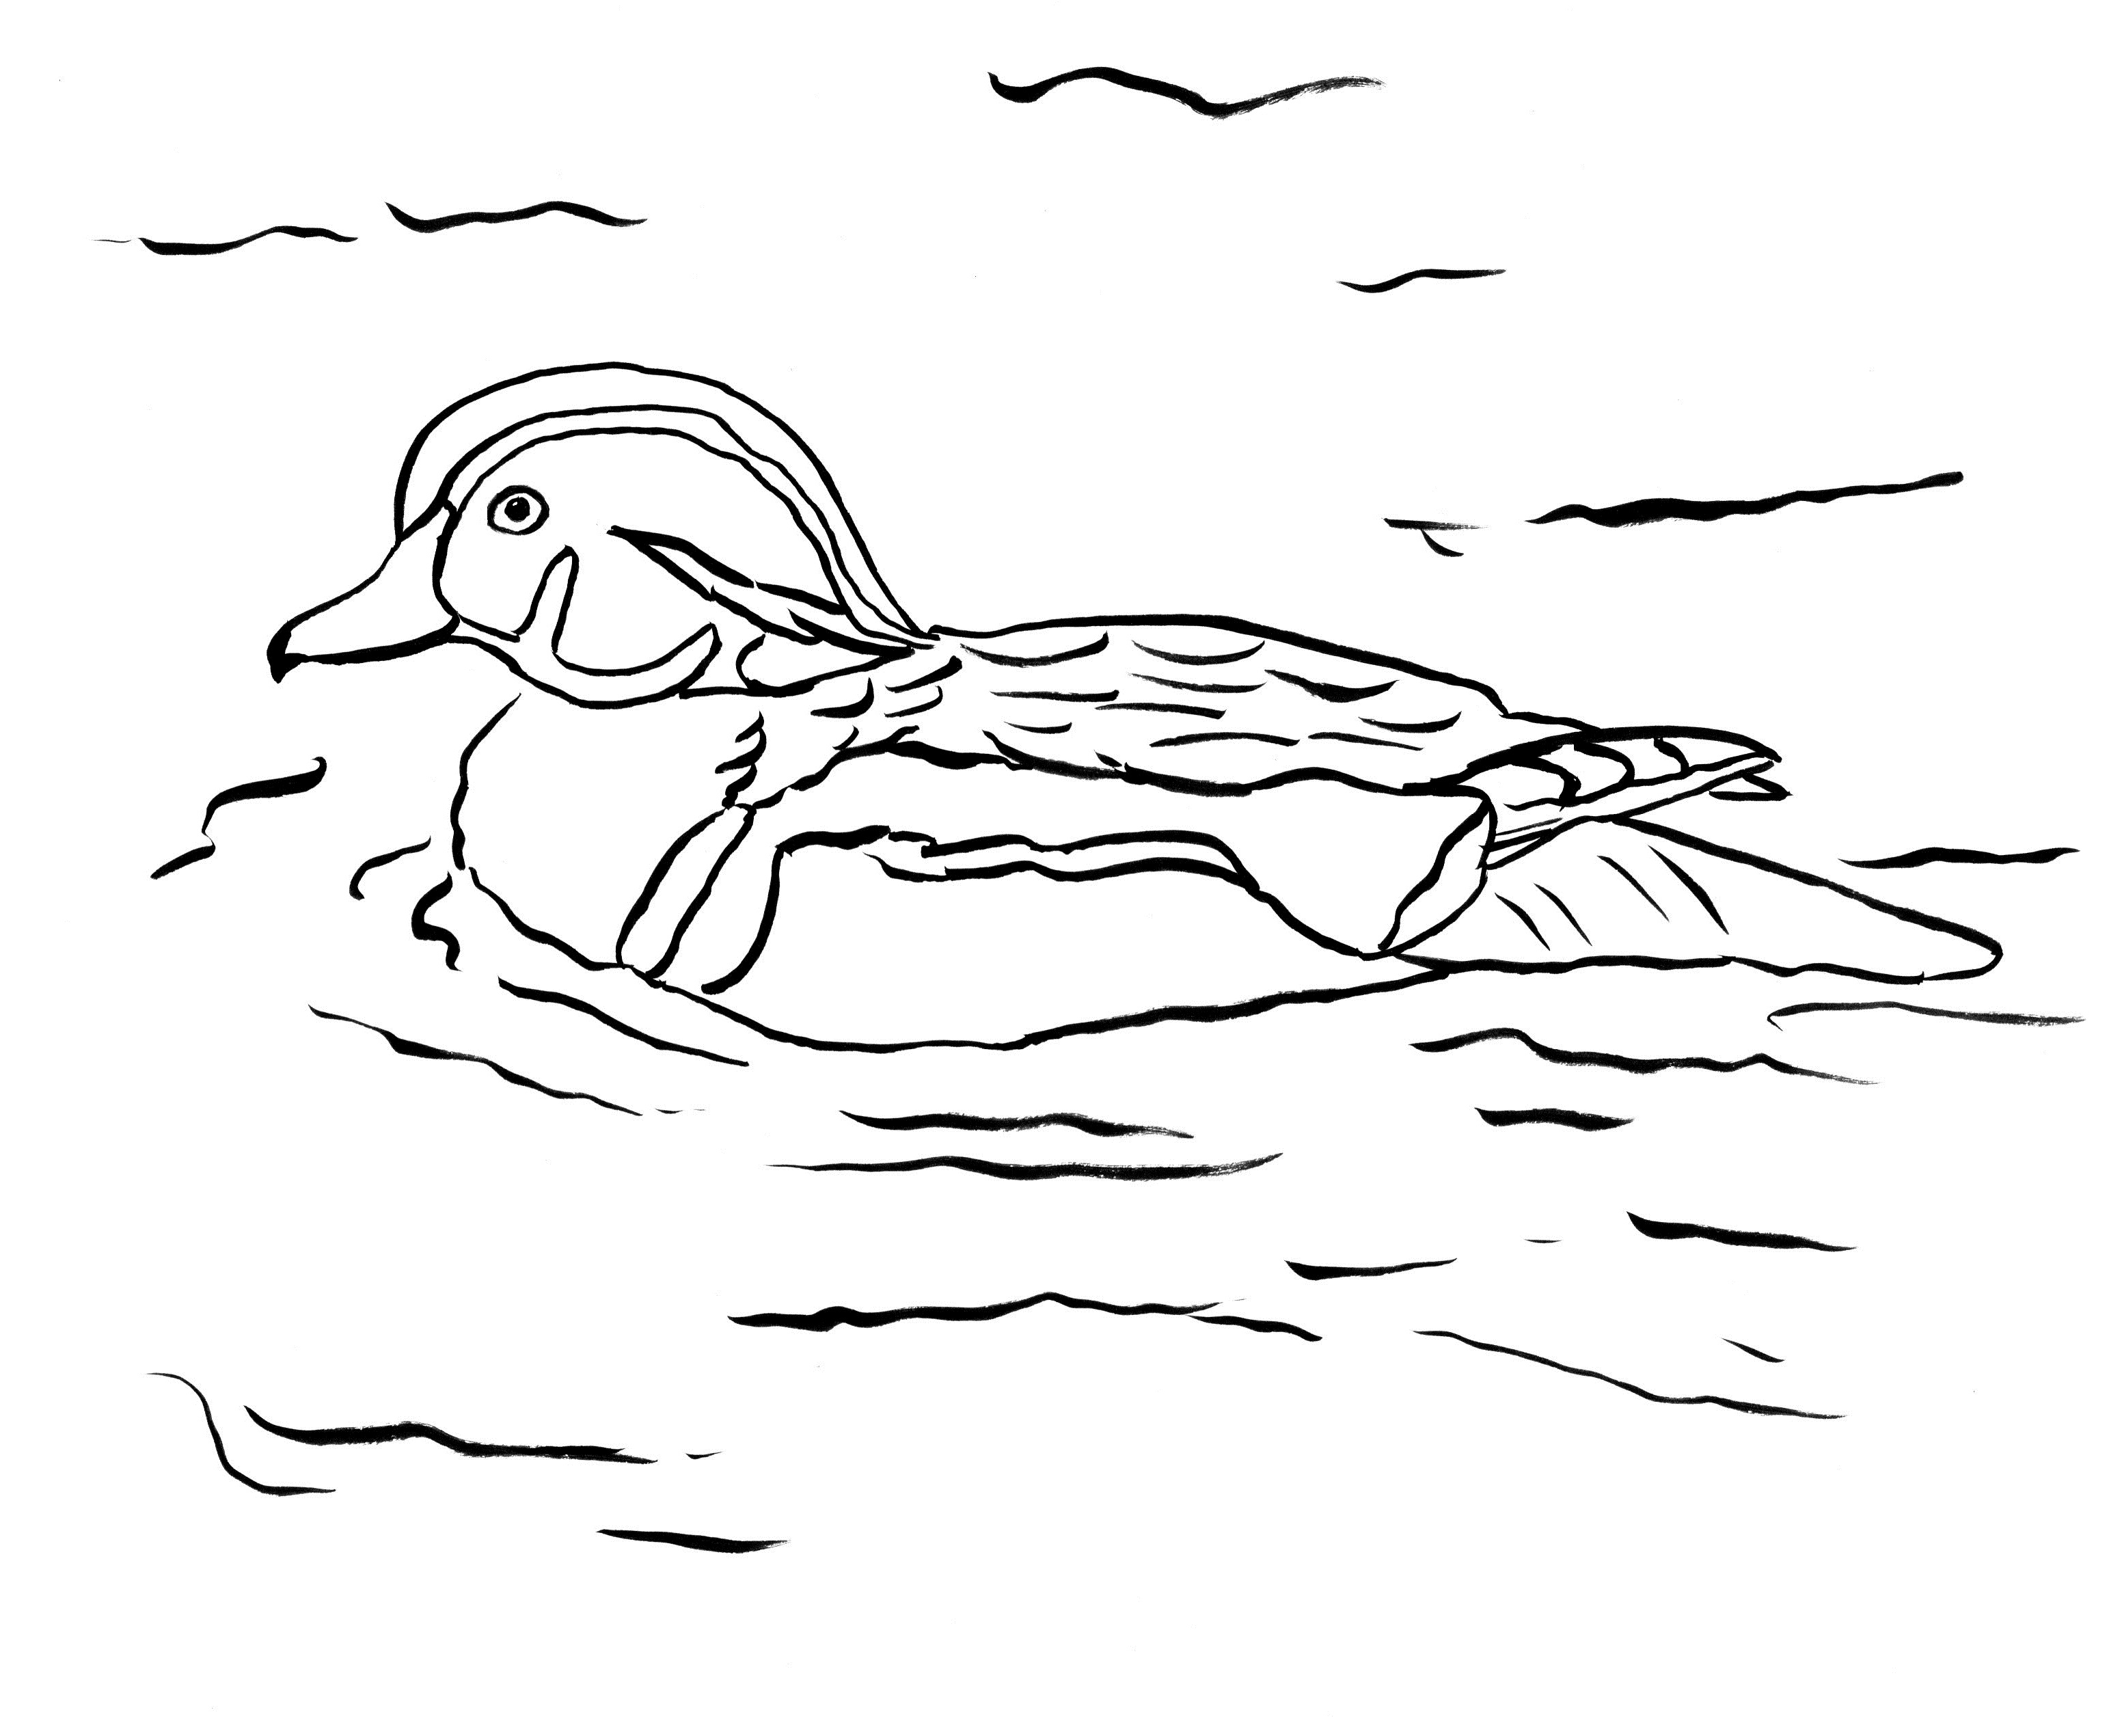 Wood duck coloring page samantha bell for Mallard coloring page